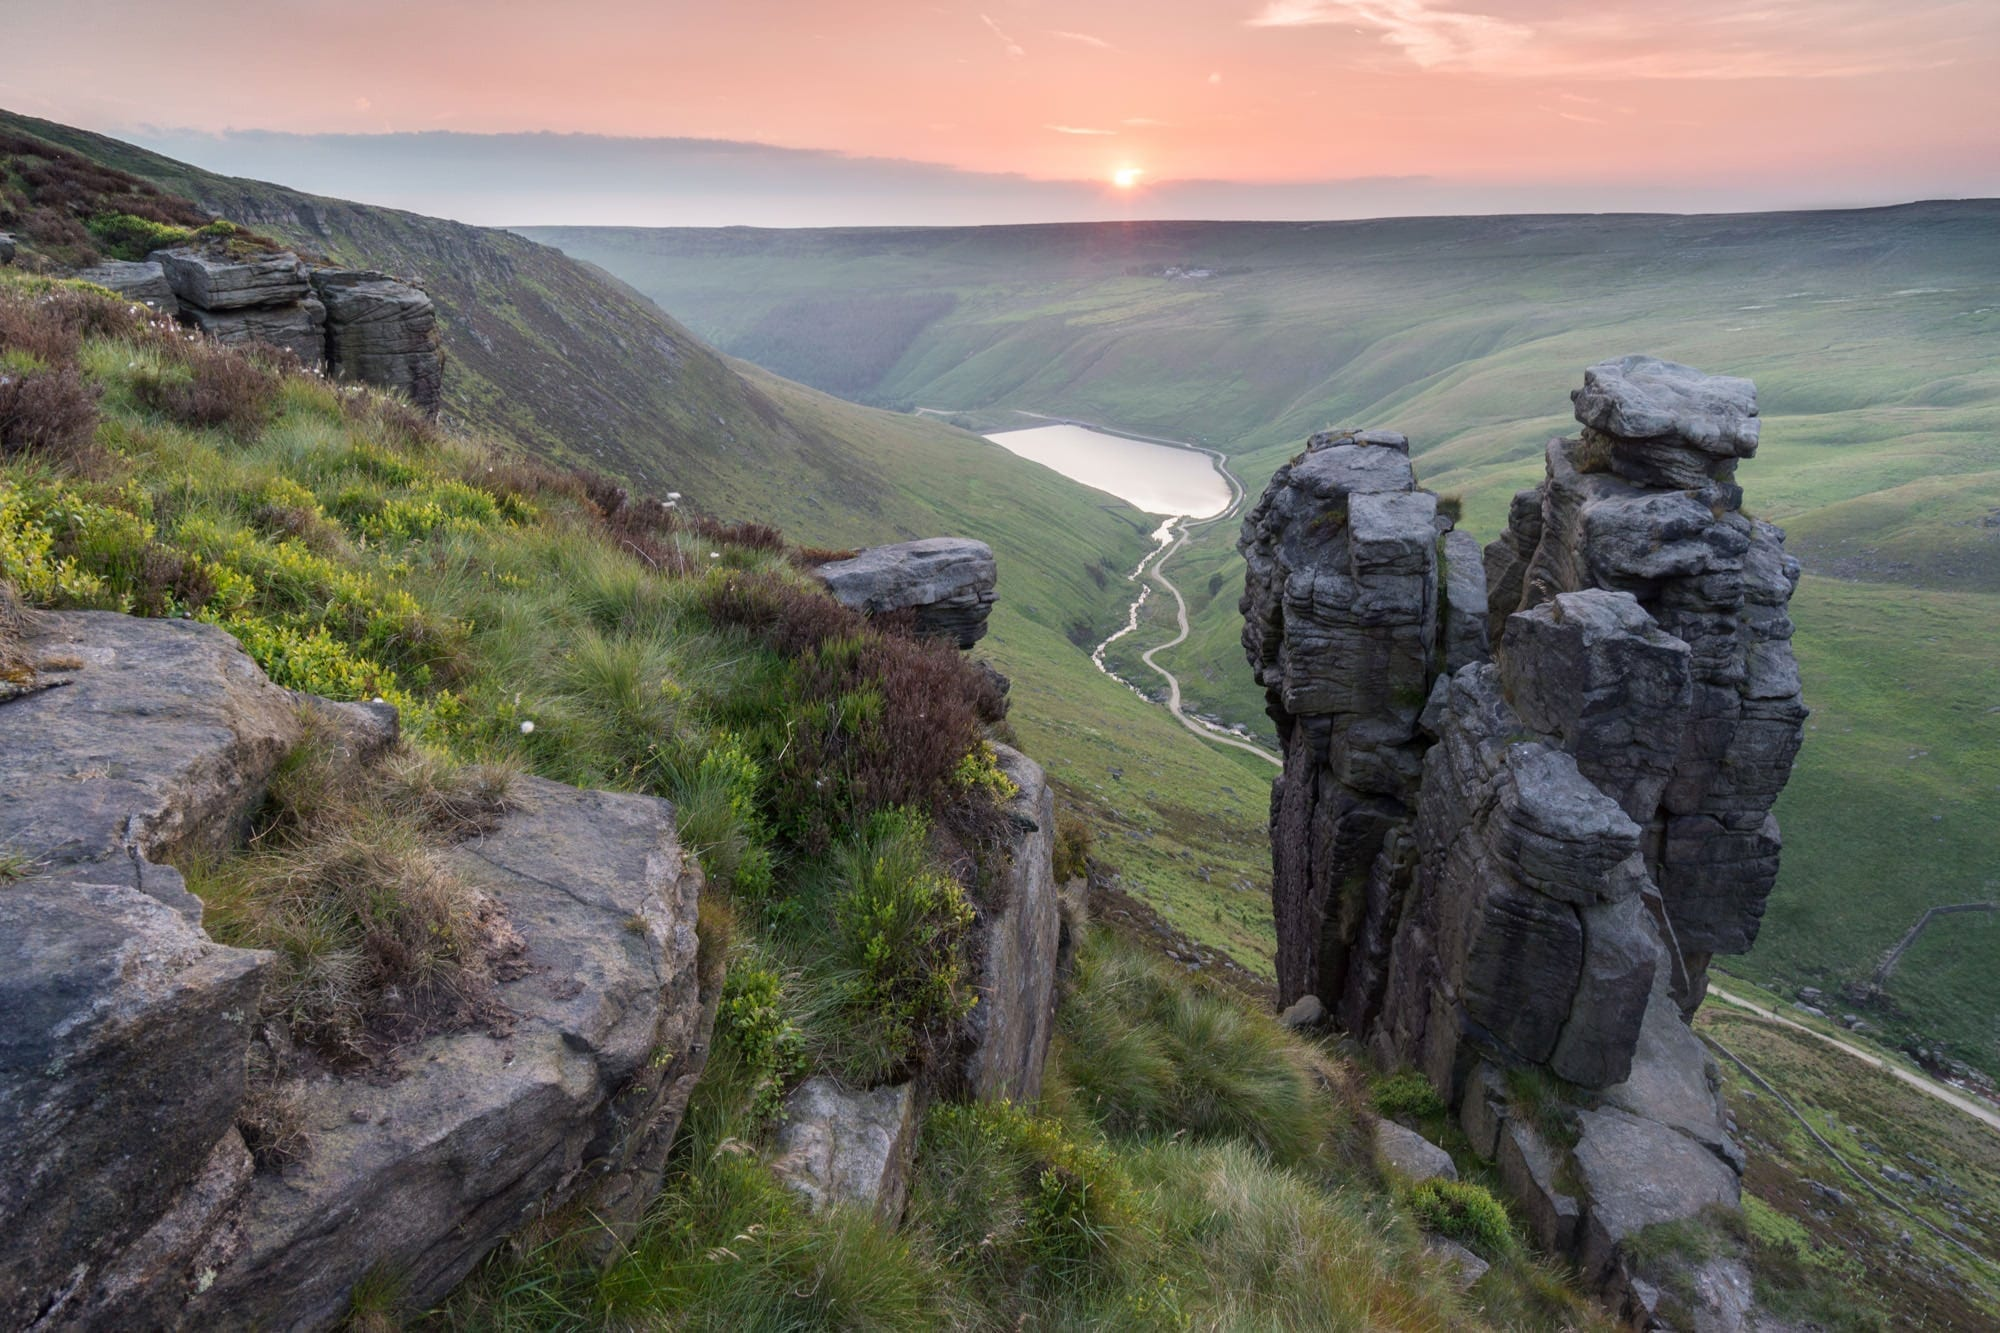 The Trinnacle Sunset - Stunning Saddleworth Photography Workshop